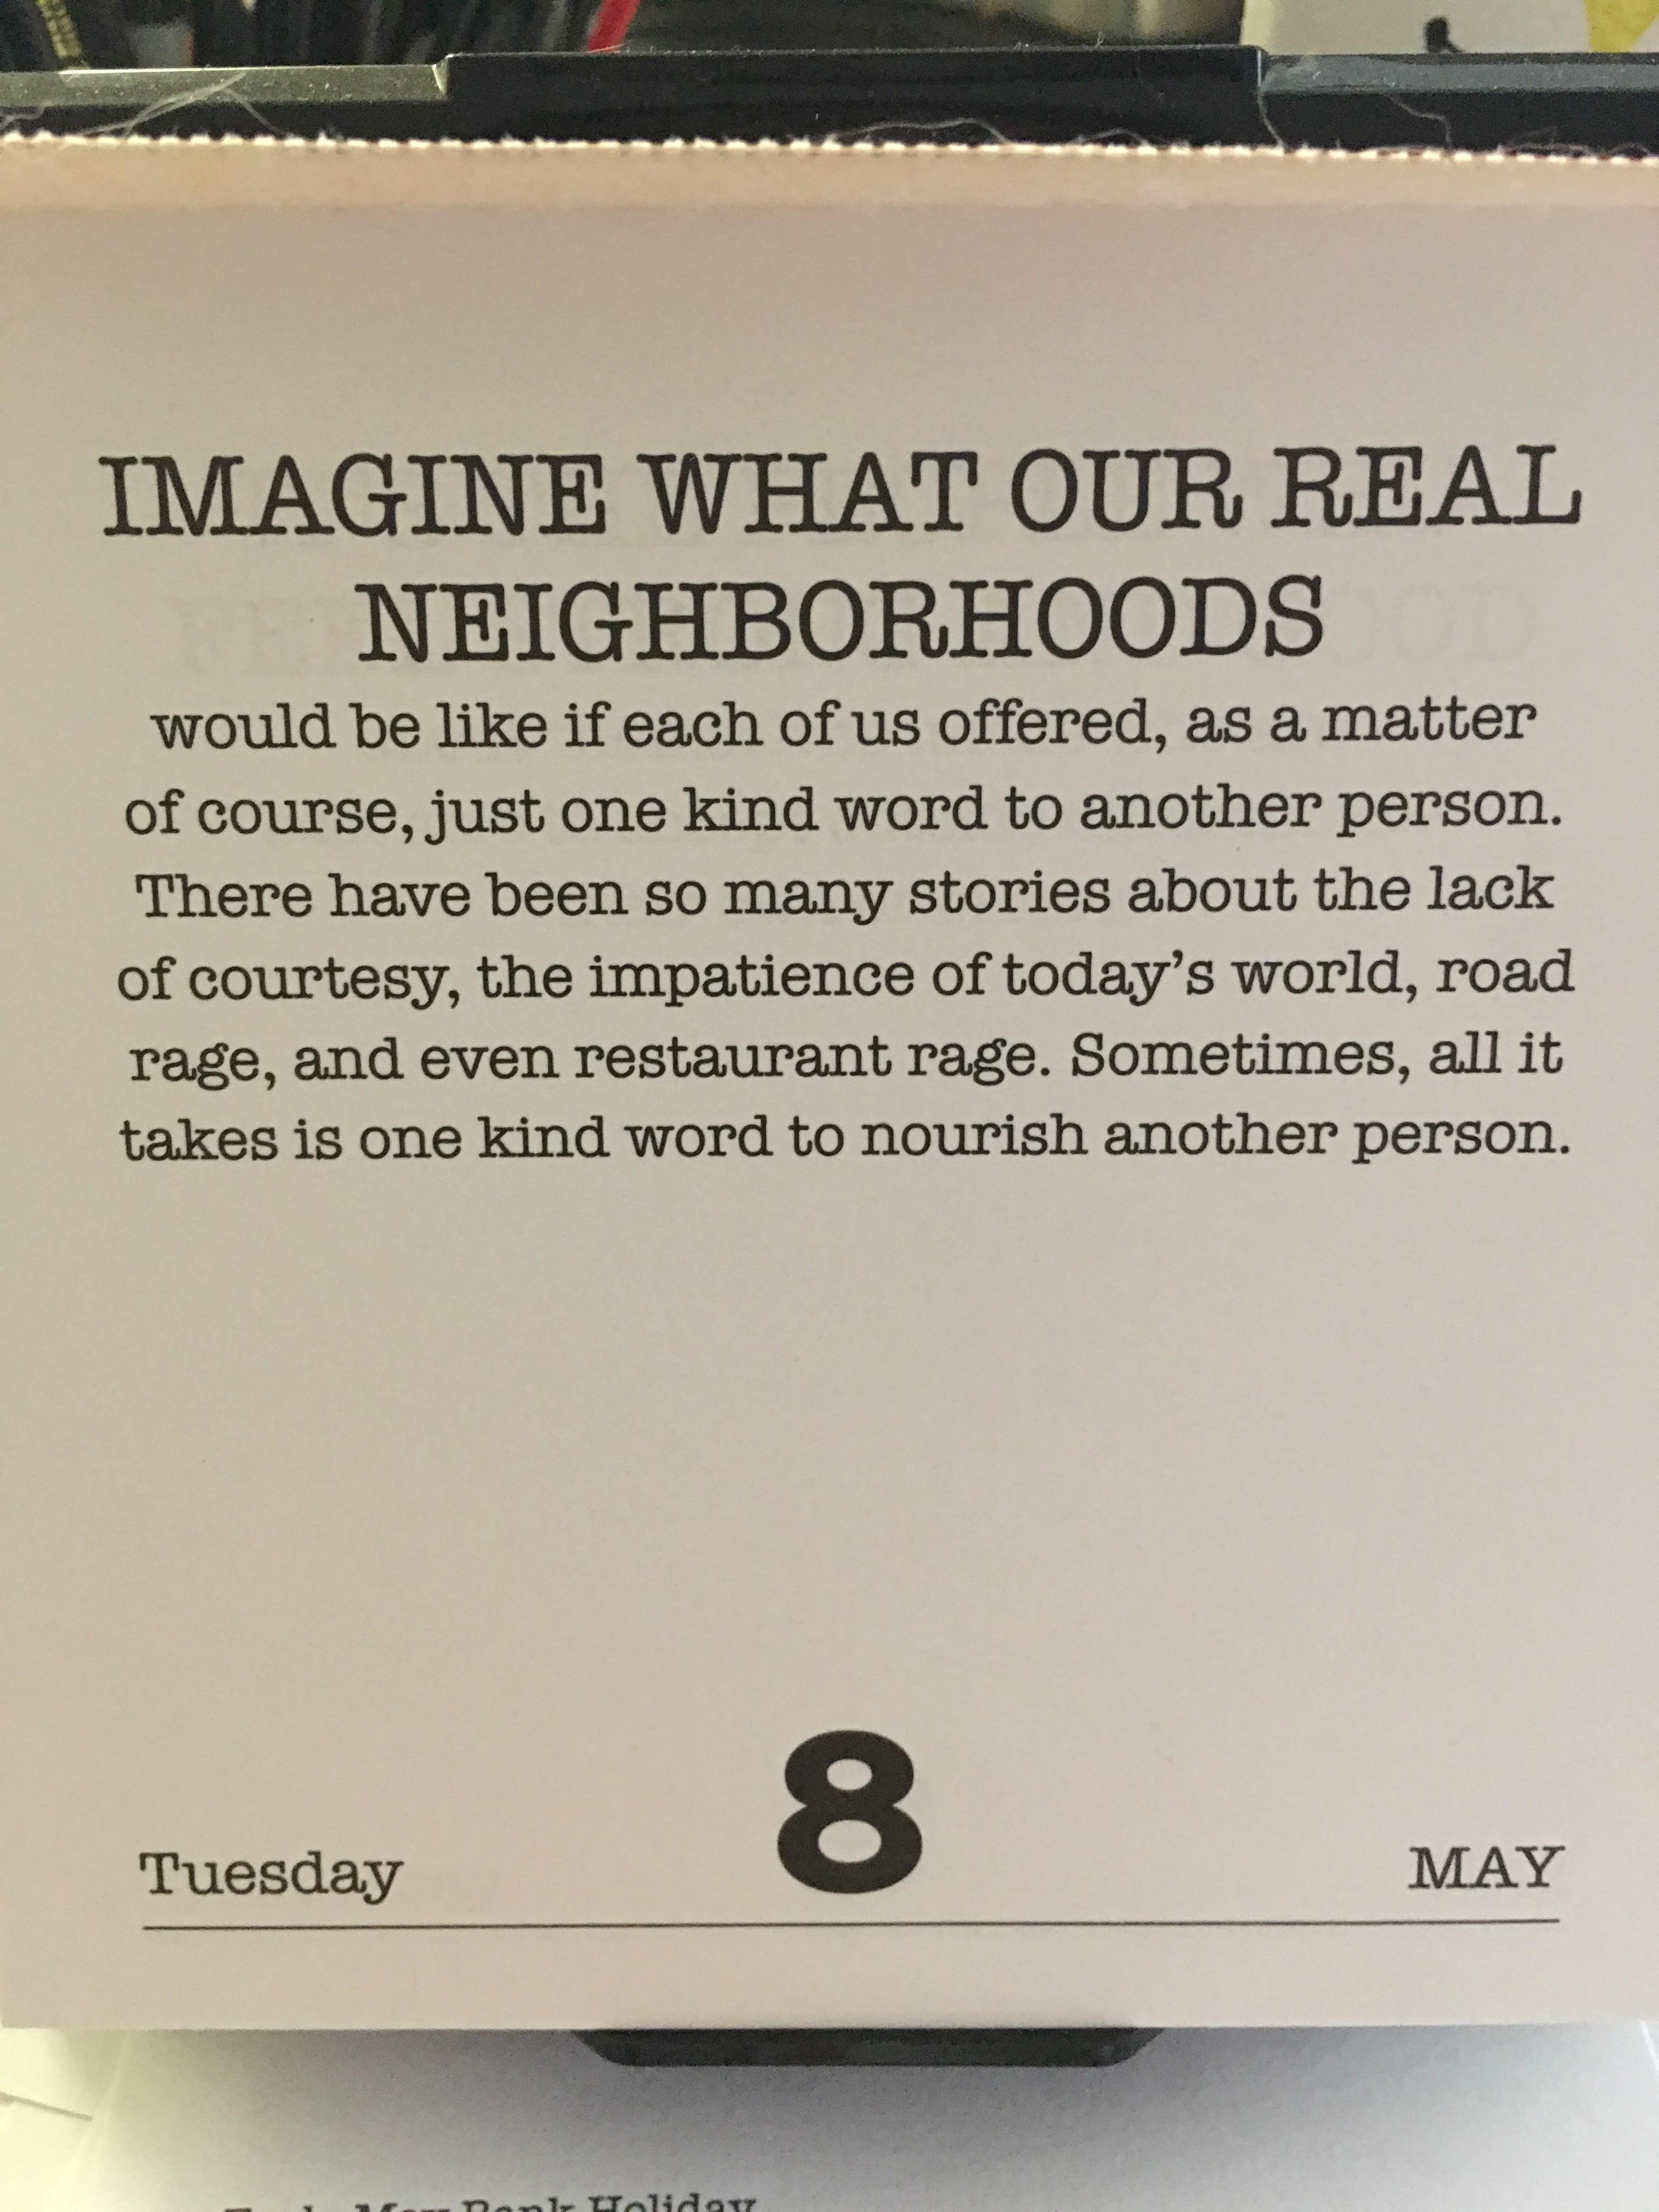 [IMAGE] More advice from Fred Rogers – one kind word.